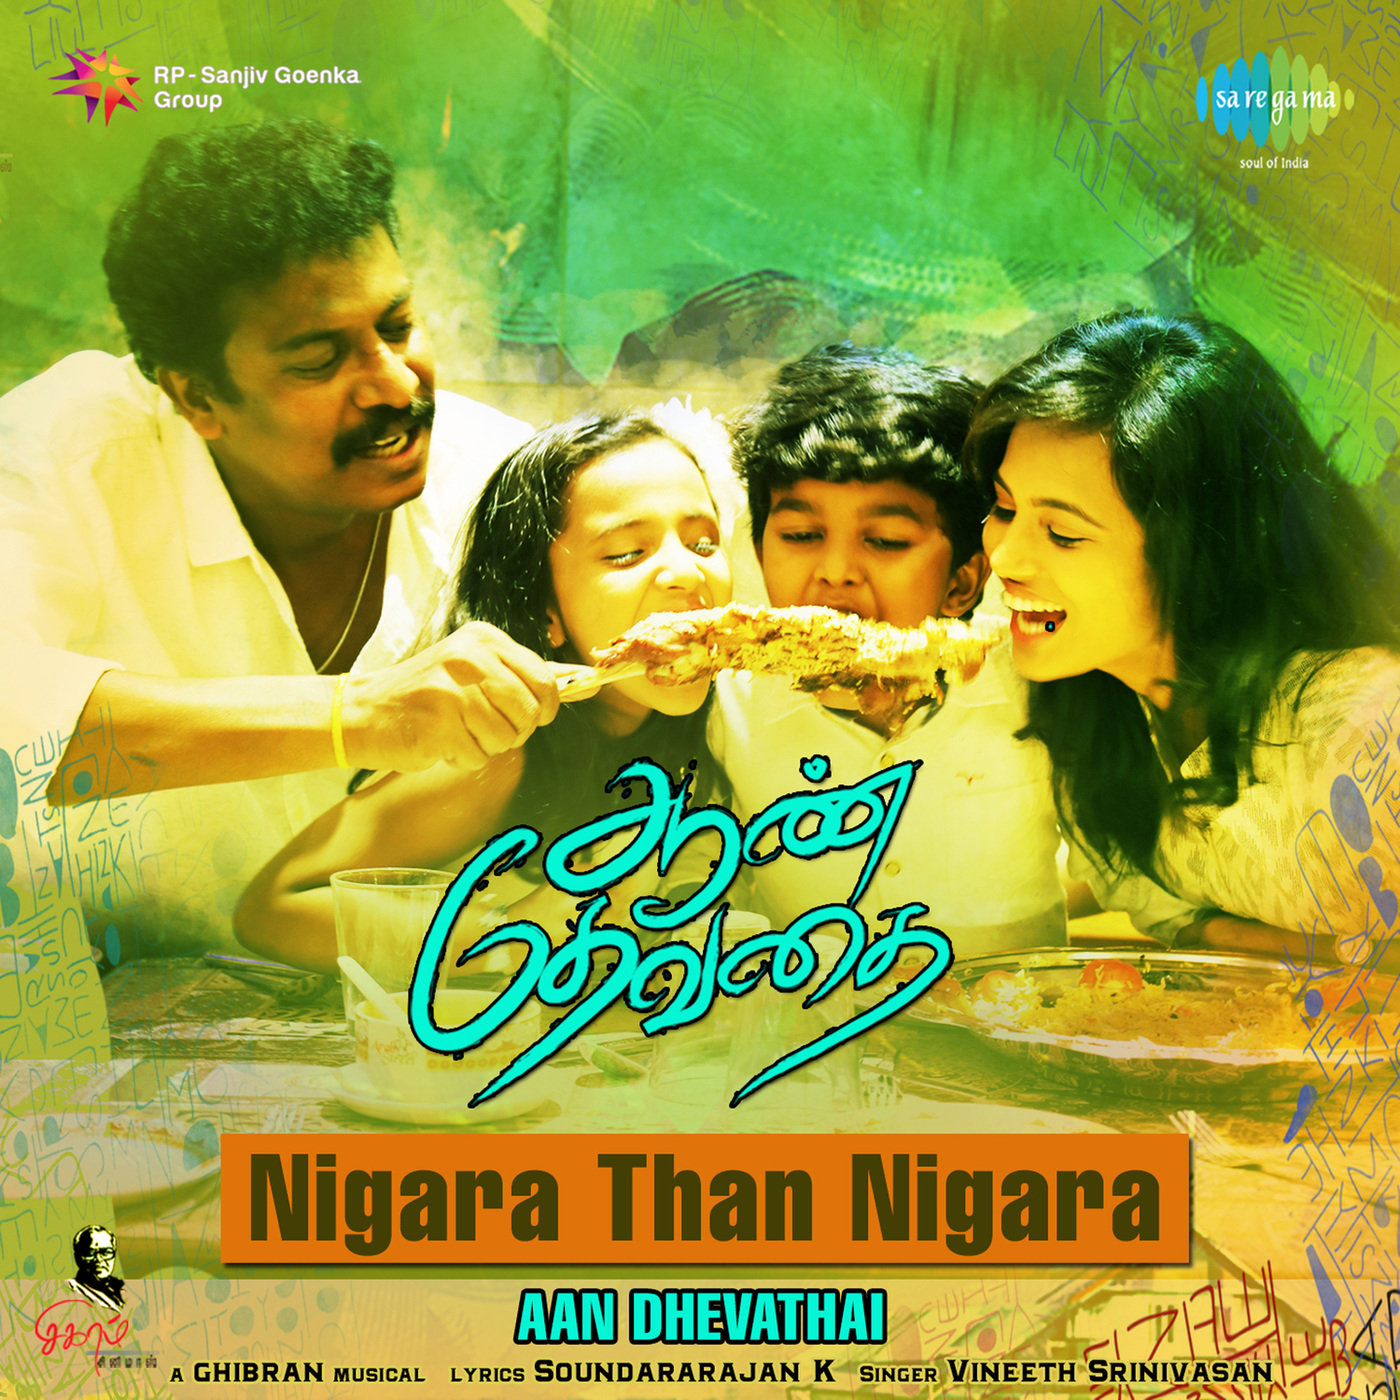 Nigara Than Nigara From Aan Dhevathai – Single 16 BIT FLAC